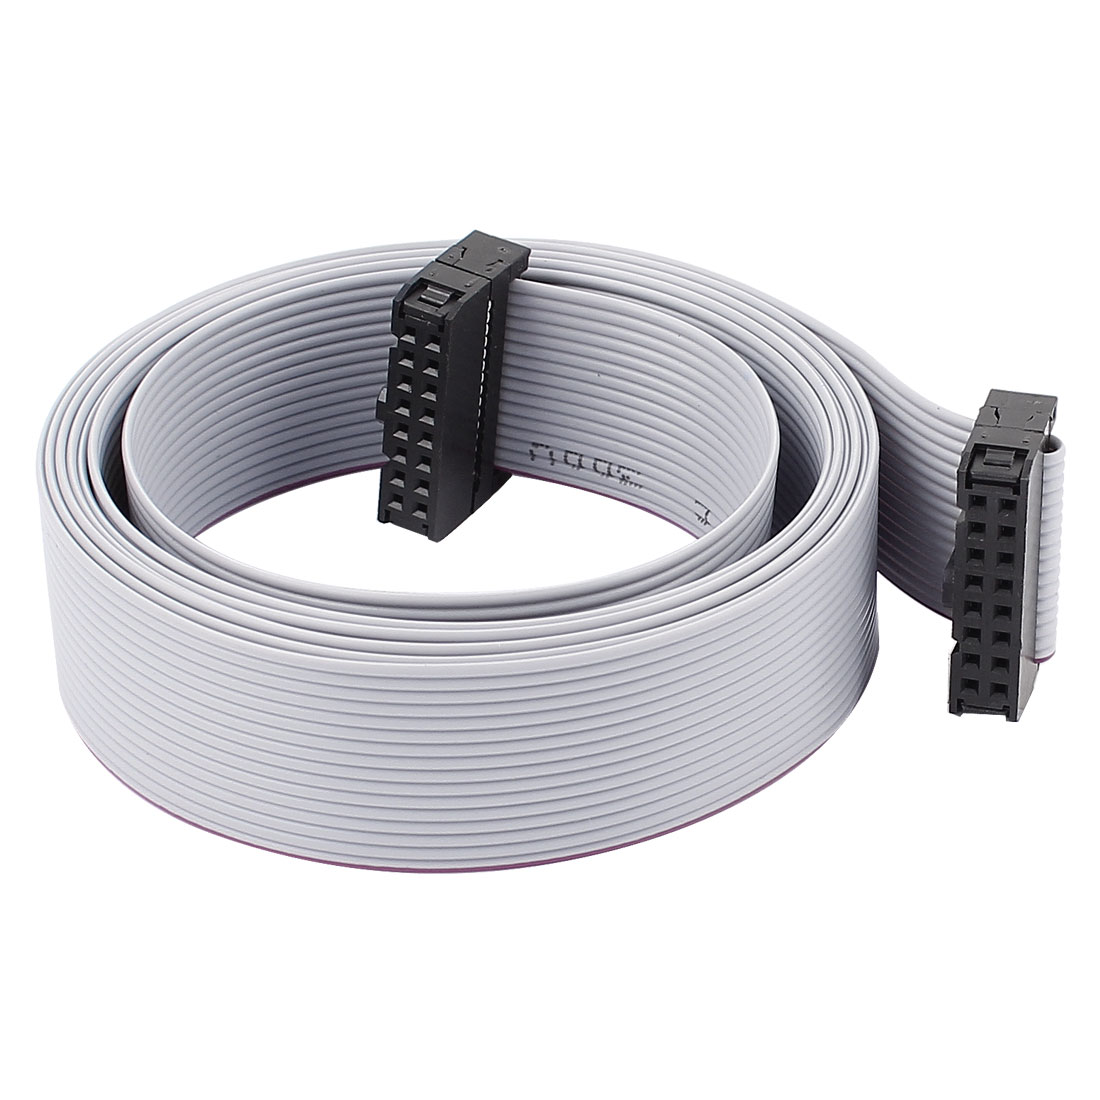 2.54mm Pitch 16Pin F/F IDC Connector Hard Driver Flat Ribbon Cable 148cm Length